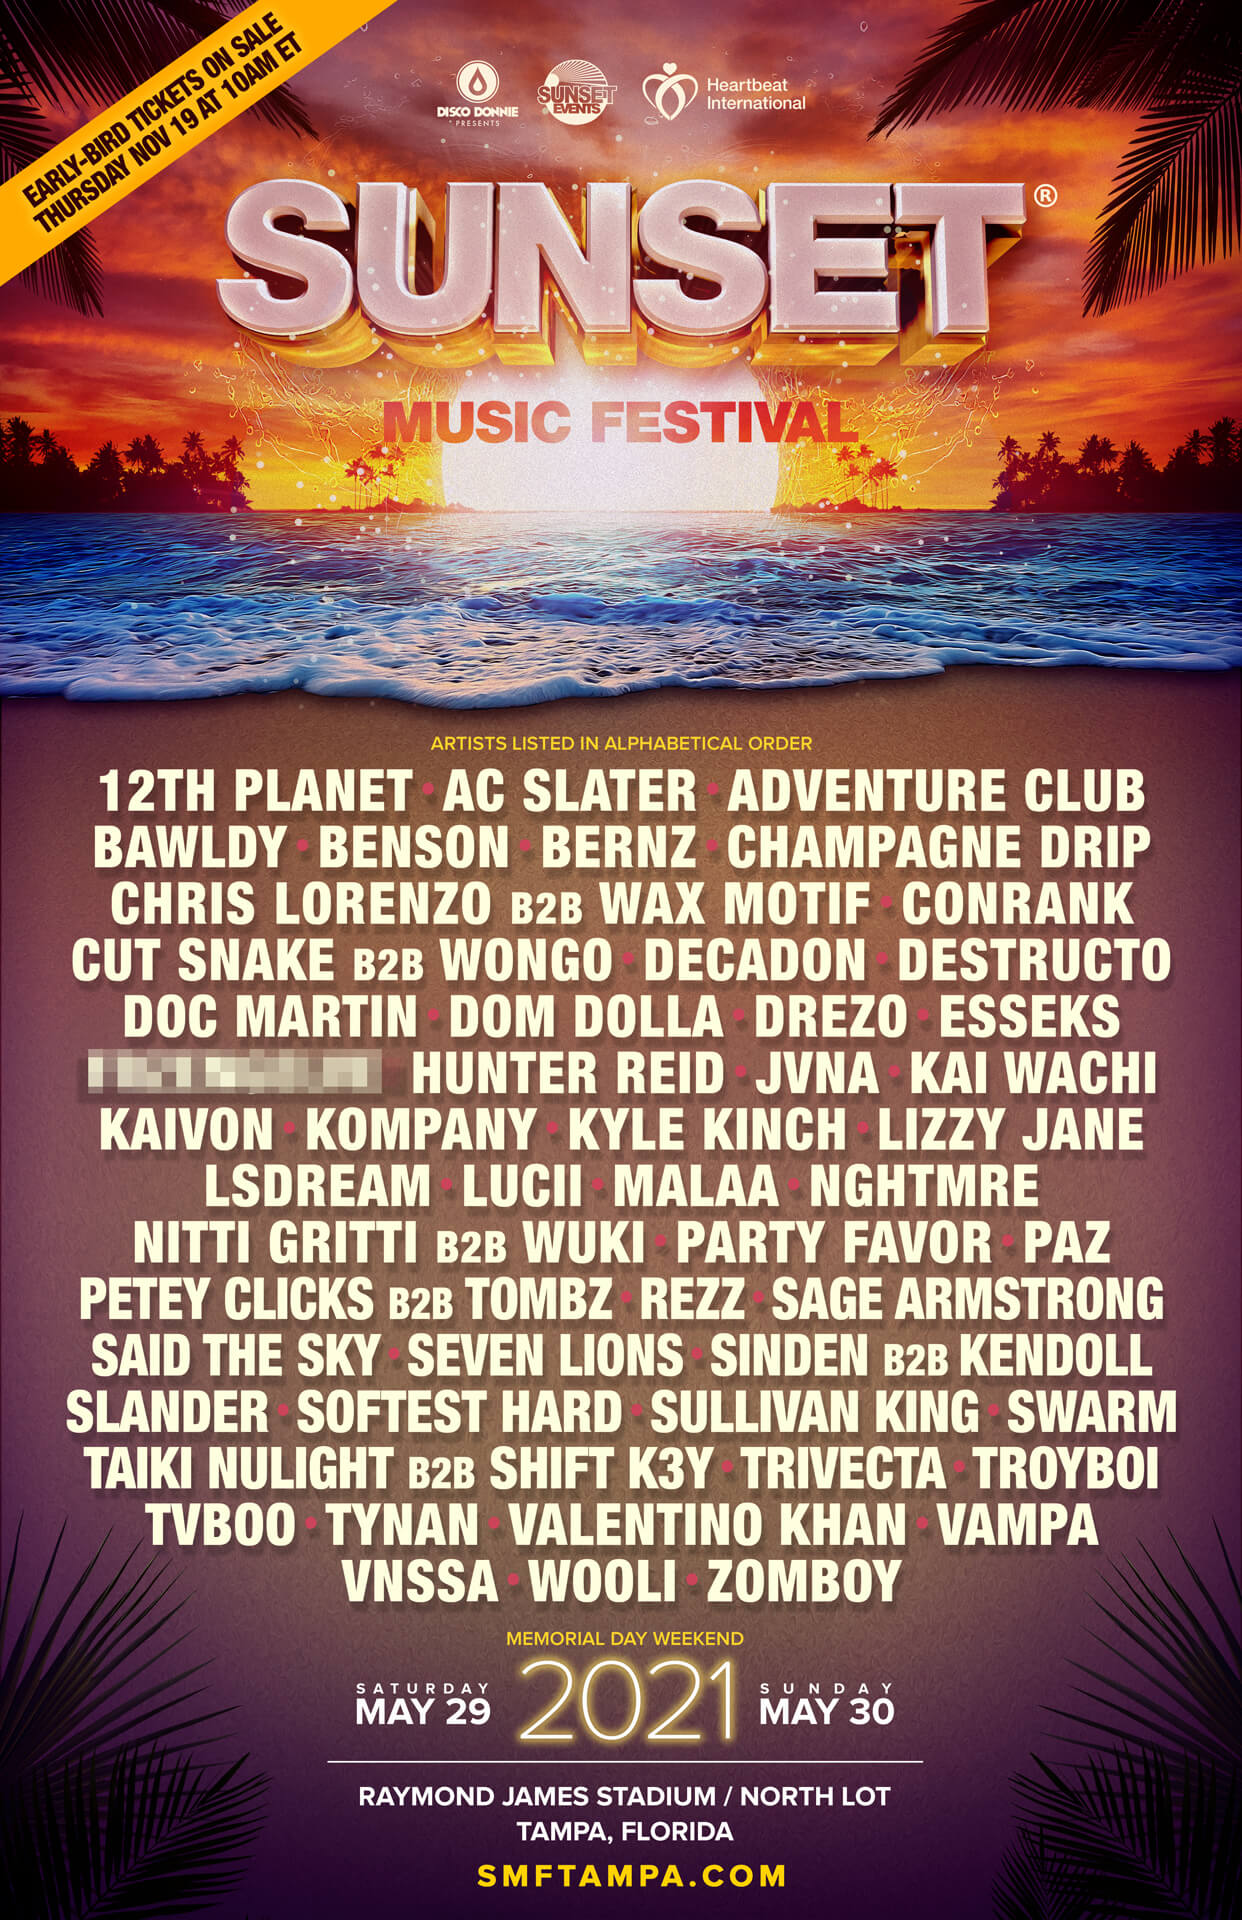 sunset music festival 2021 lineup